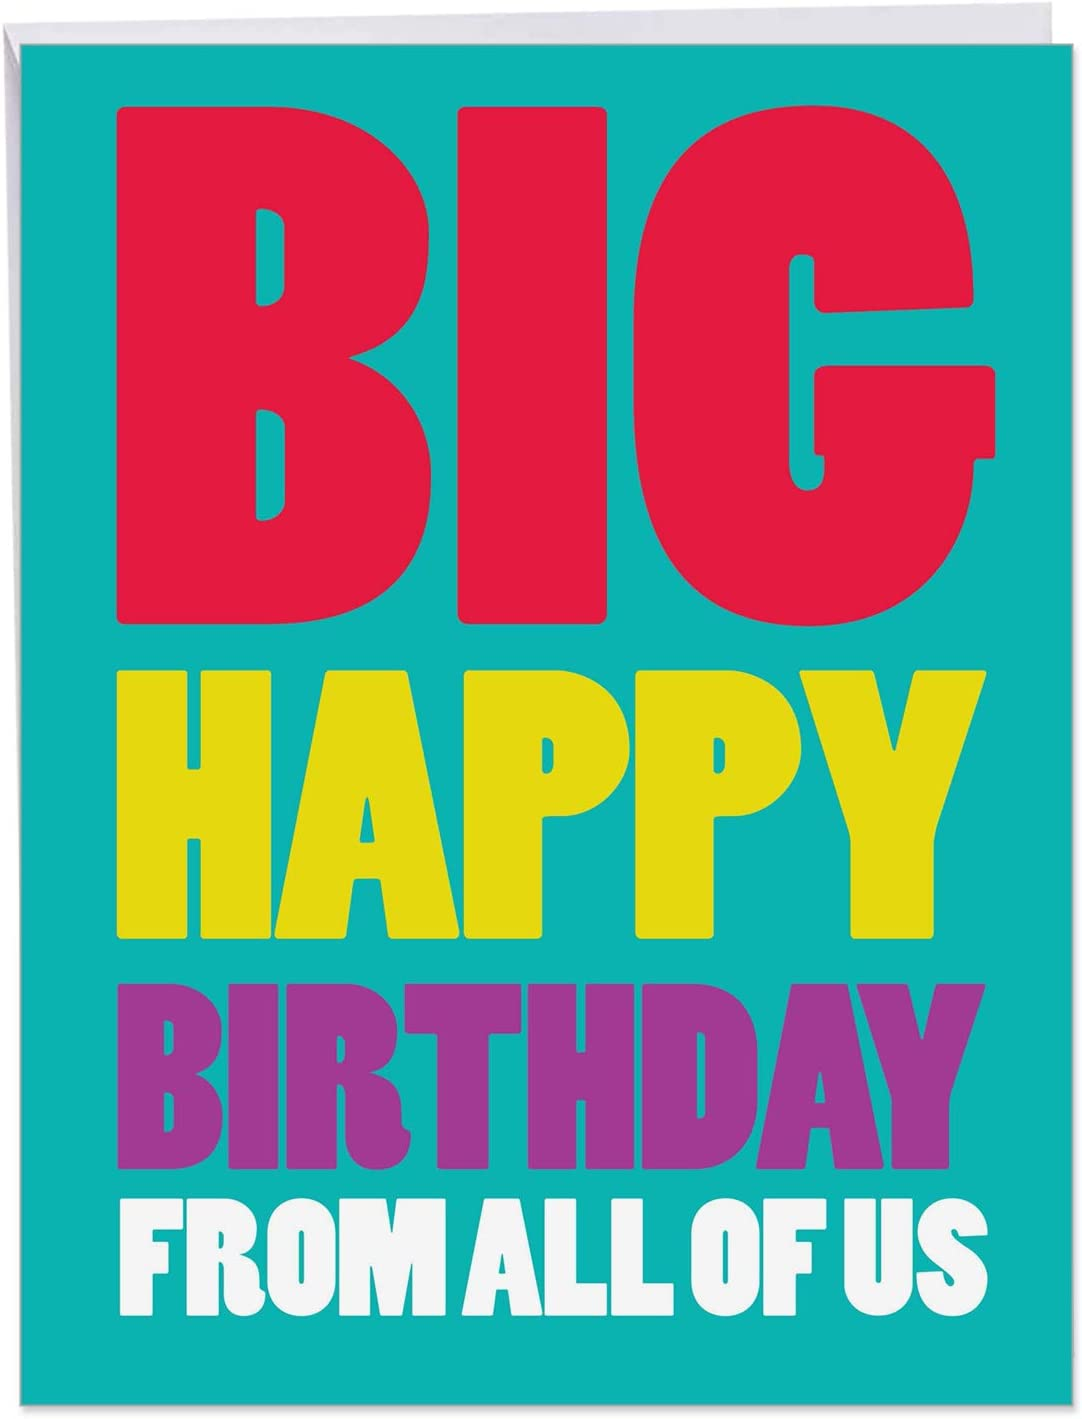 NobleWorks - Big Happy Birthday Card (8.8 x 8 Inch) - Fun Group Greeting  Card, Colorful Stationery Notecard from All of Us J8BDG